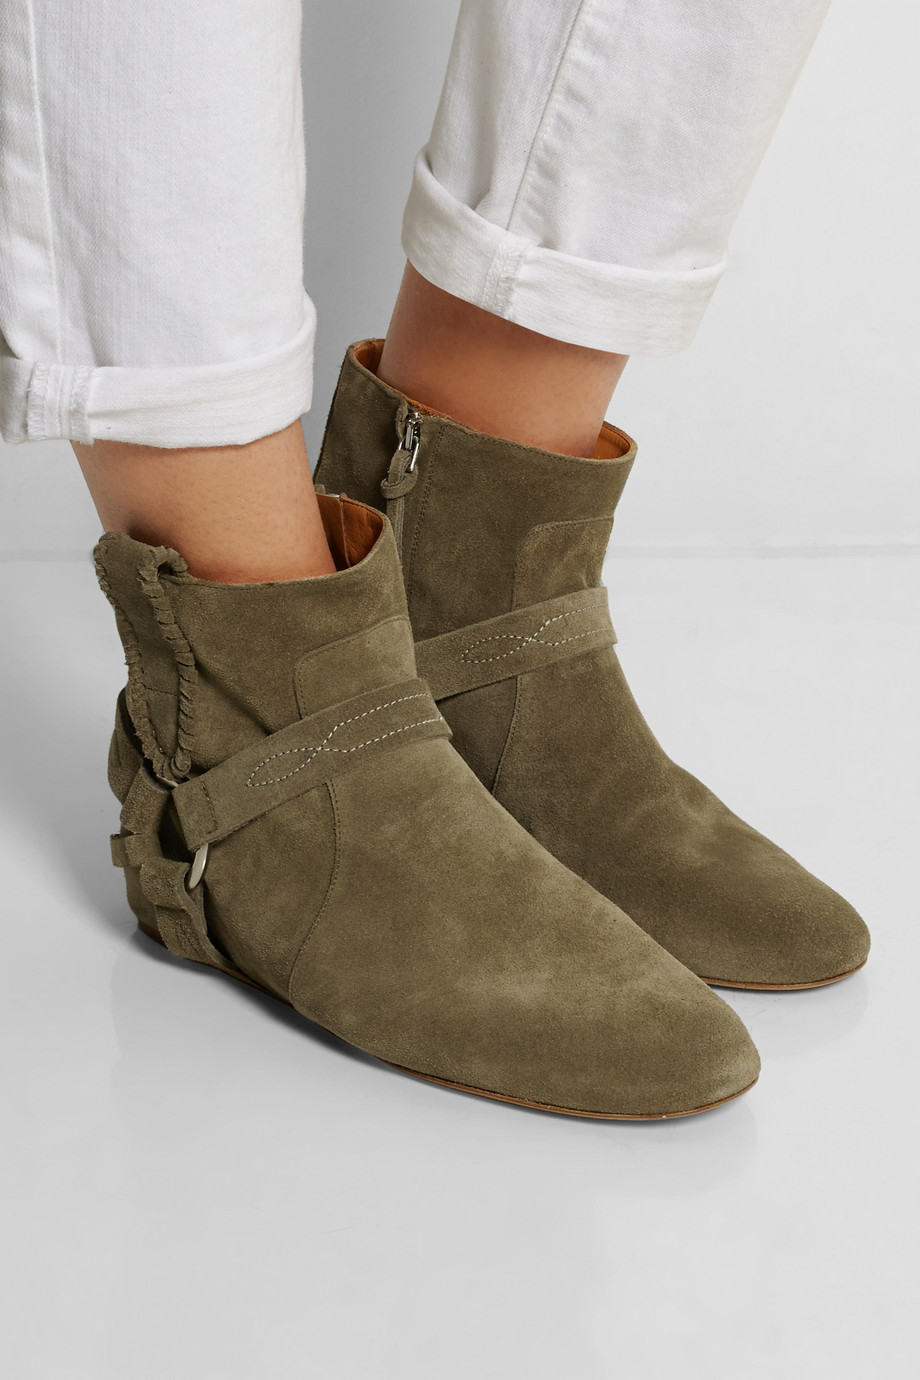 Étoile Isabel Marant Ralf Gaucho Ankle Boots fake online free shipping explore buy cheap find great sale visit new lnUWv6